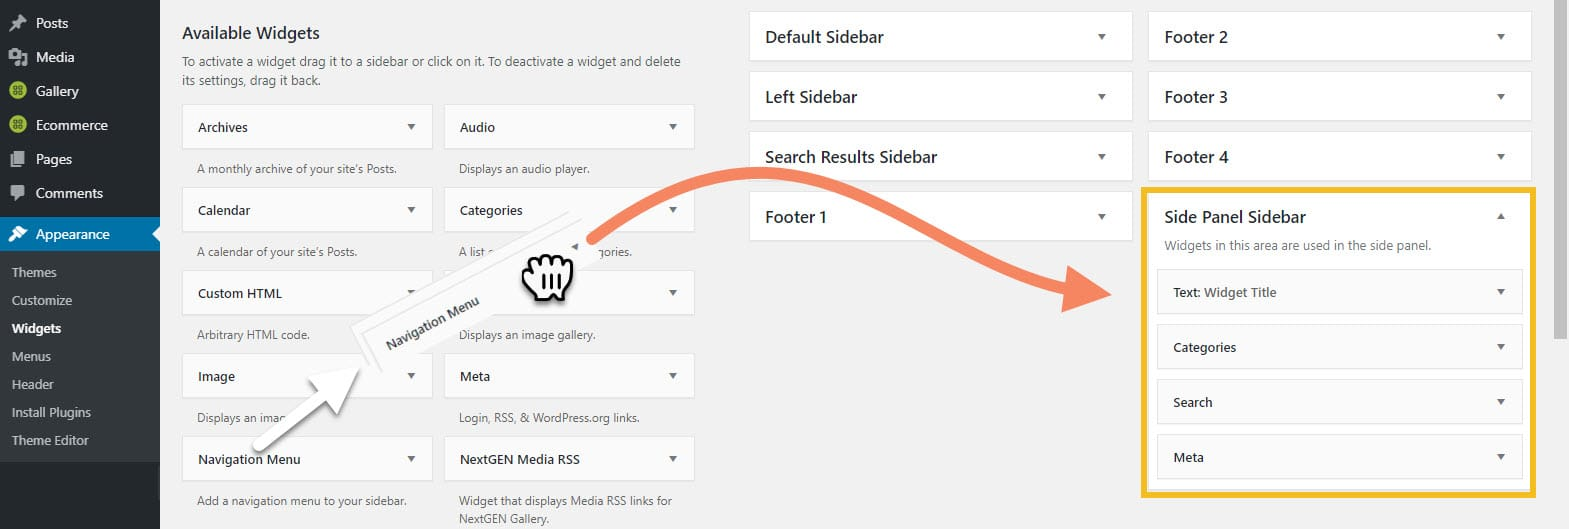 How to drag and drop widgets to the Side Panel sidebar